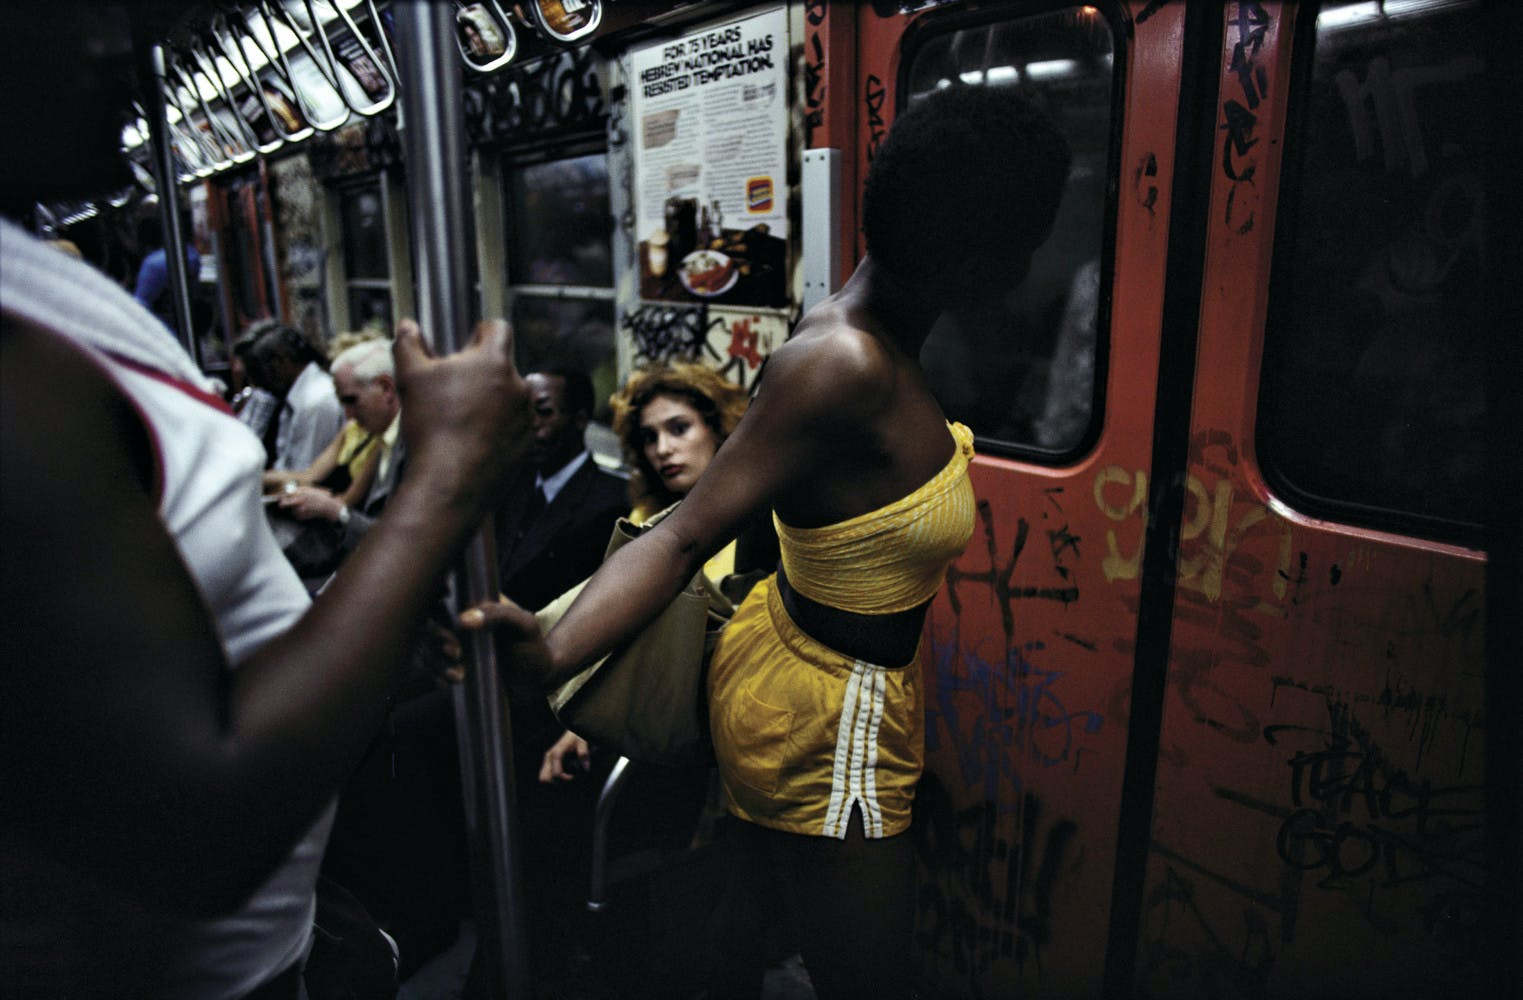 BRUCE DAVIDSON: NEW YORK'S SUBWAY SYSTEM IN THE 1980S